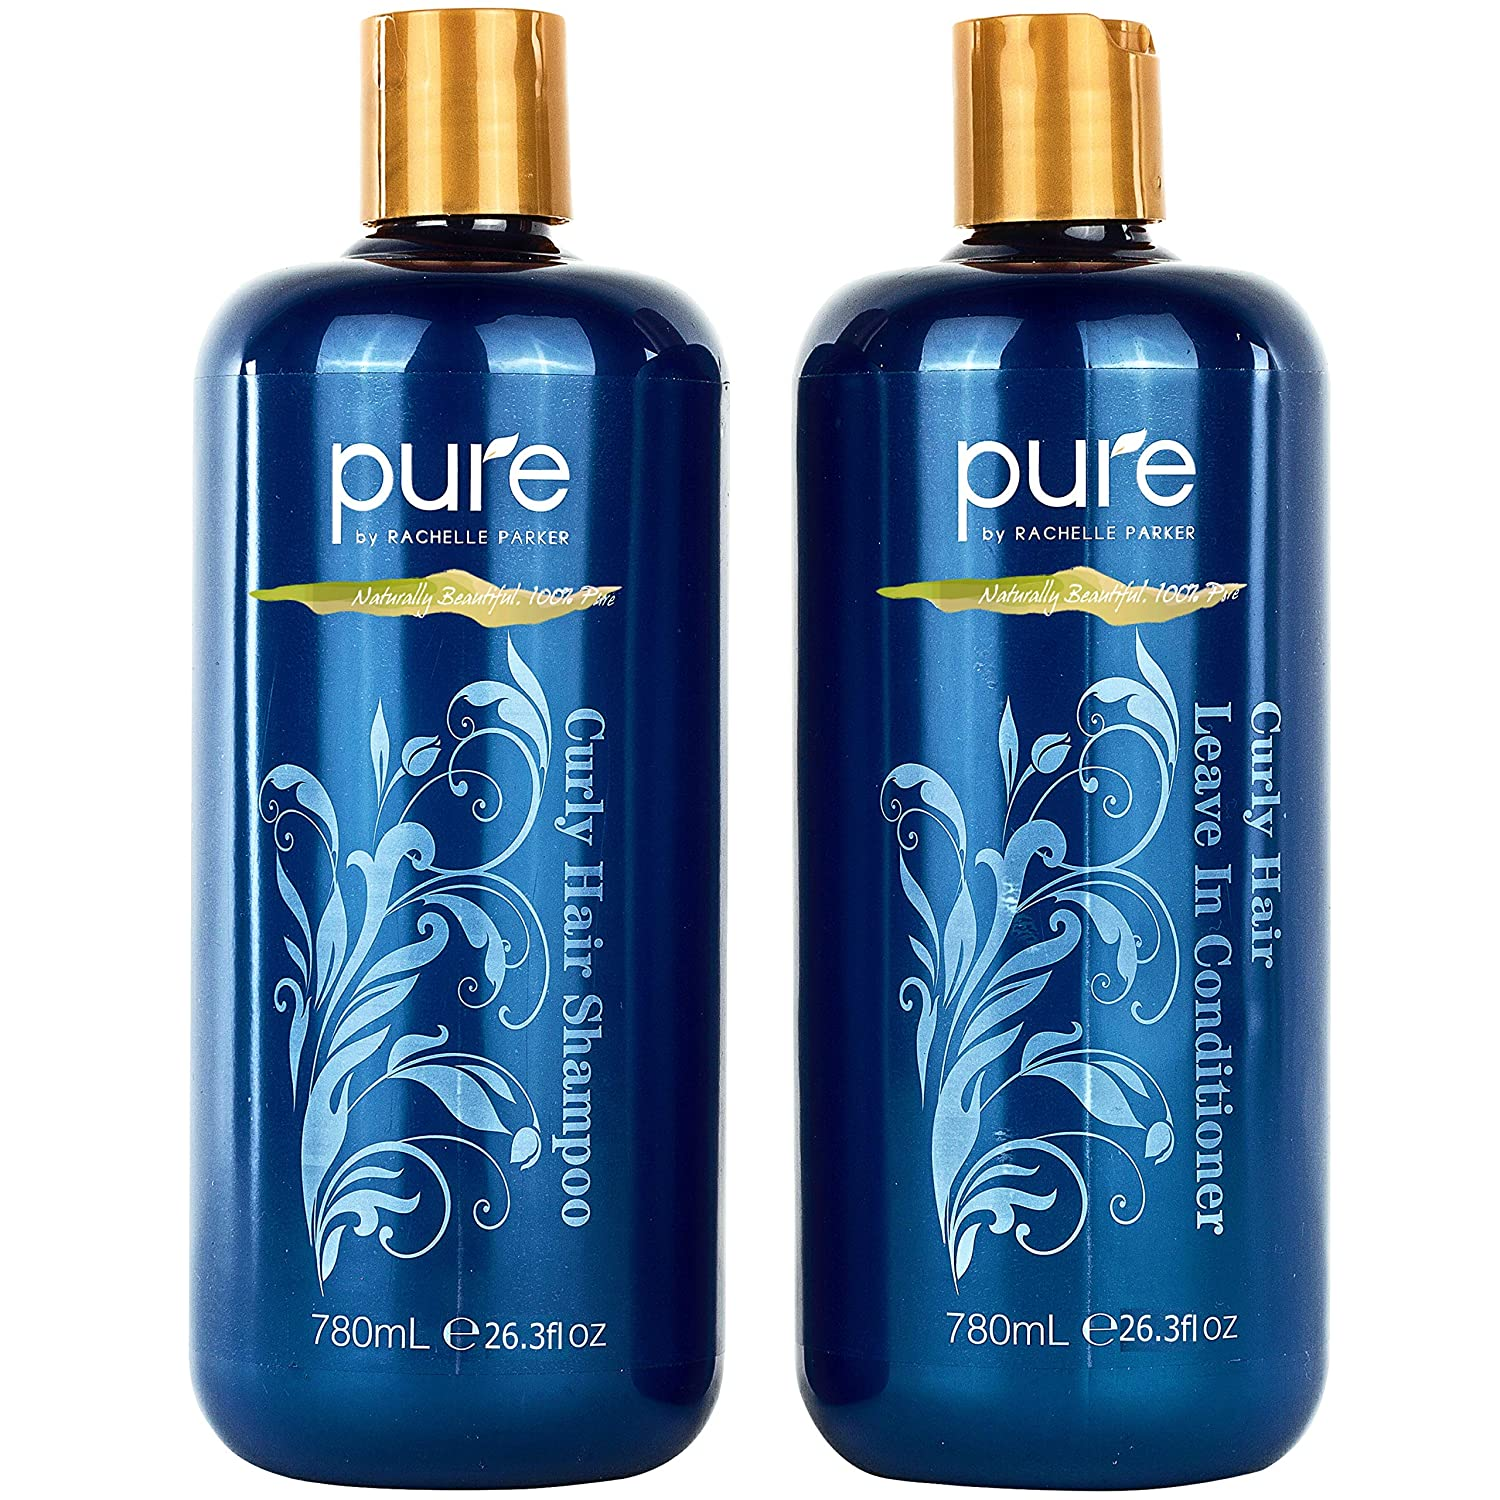 Curly Hair Shampoo and Conditioner Set for Curly Hair. Increase Hydration & Gloss. Repairs & Strengthens Hair for Smooth, Bouncy Curls. Sulfate & Paraben Free.Curly Hair Leave in Conditioner & Shampoo